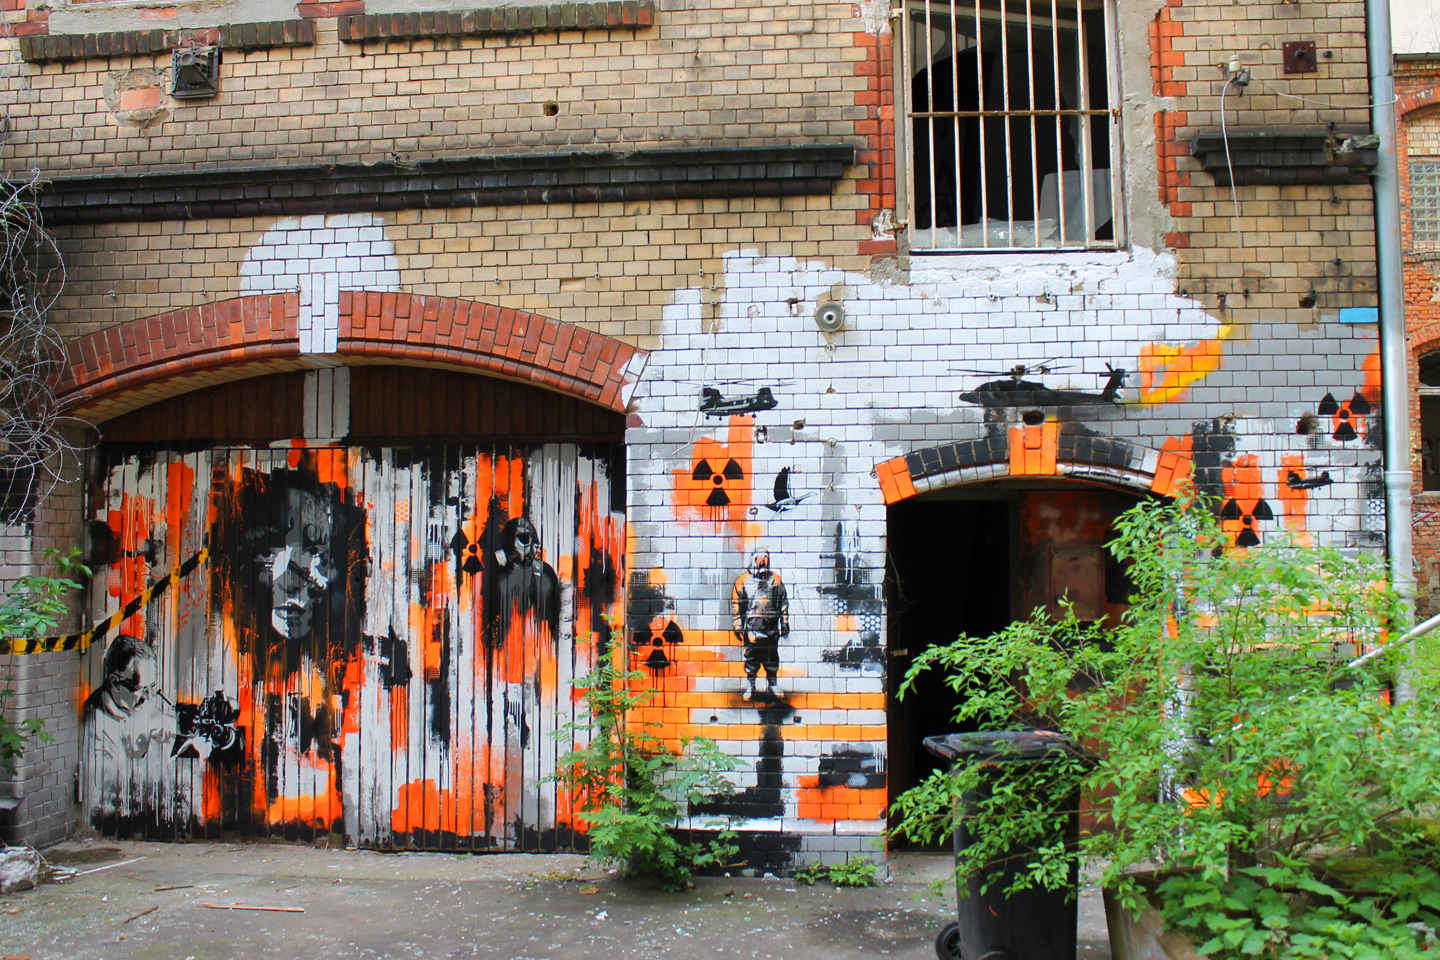 Street Art in a secret abandoned factory in Berlin by Plotbot KEN